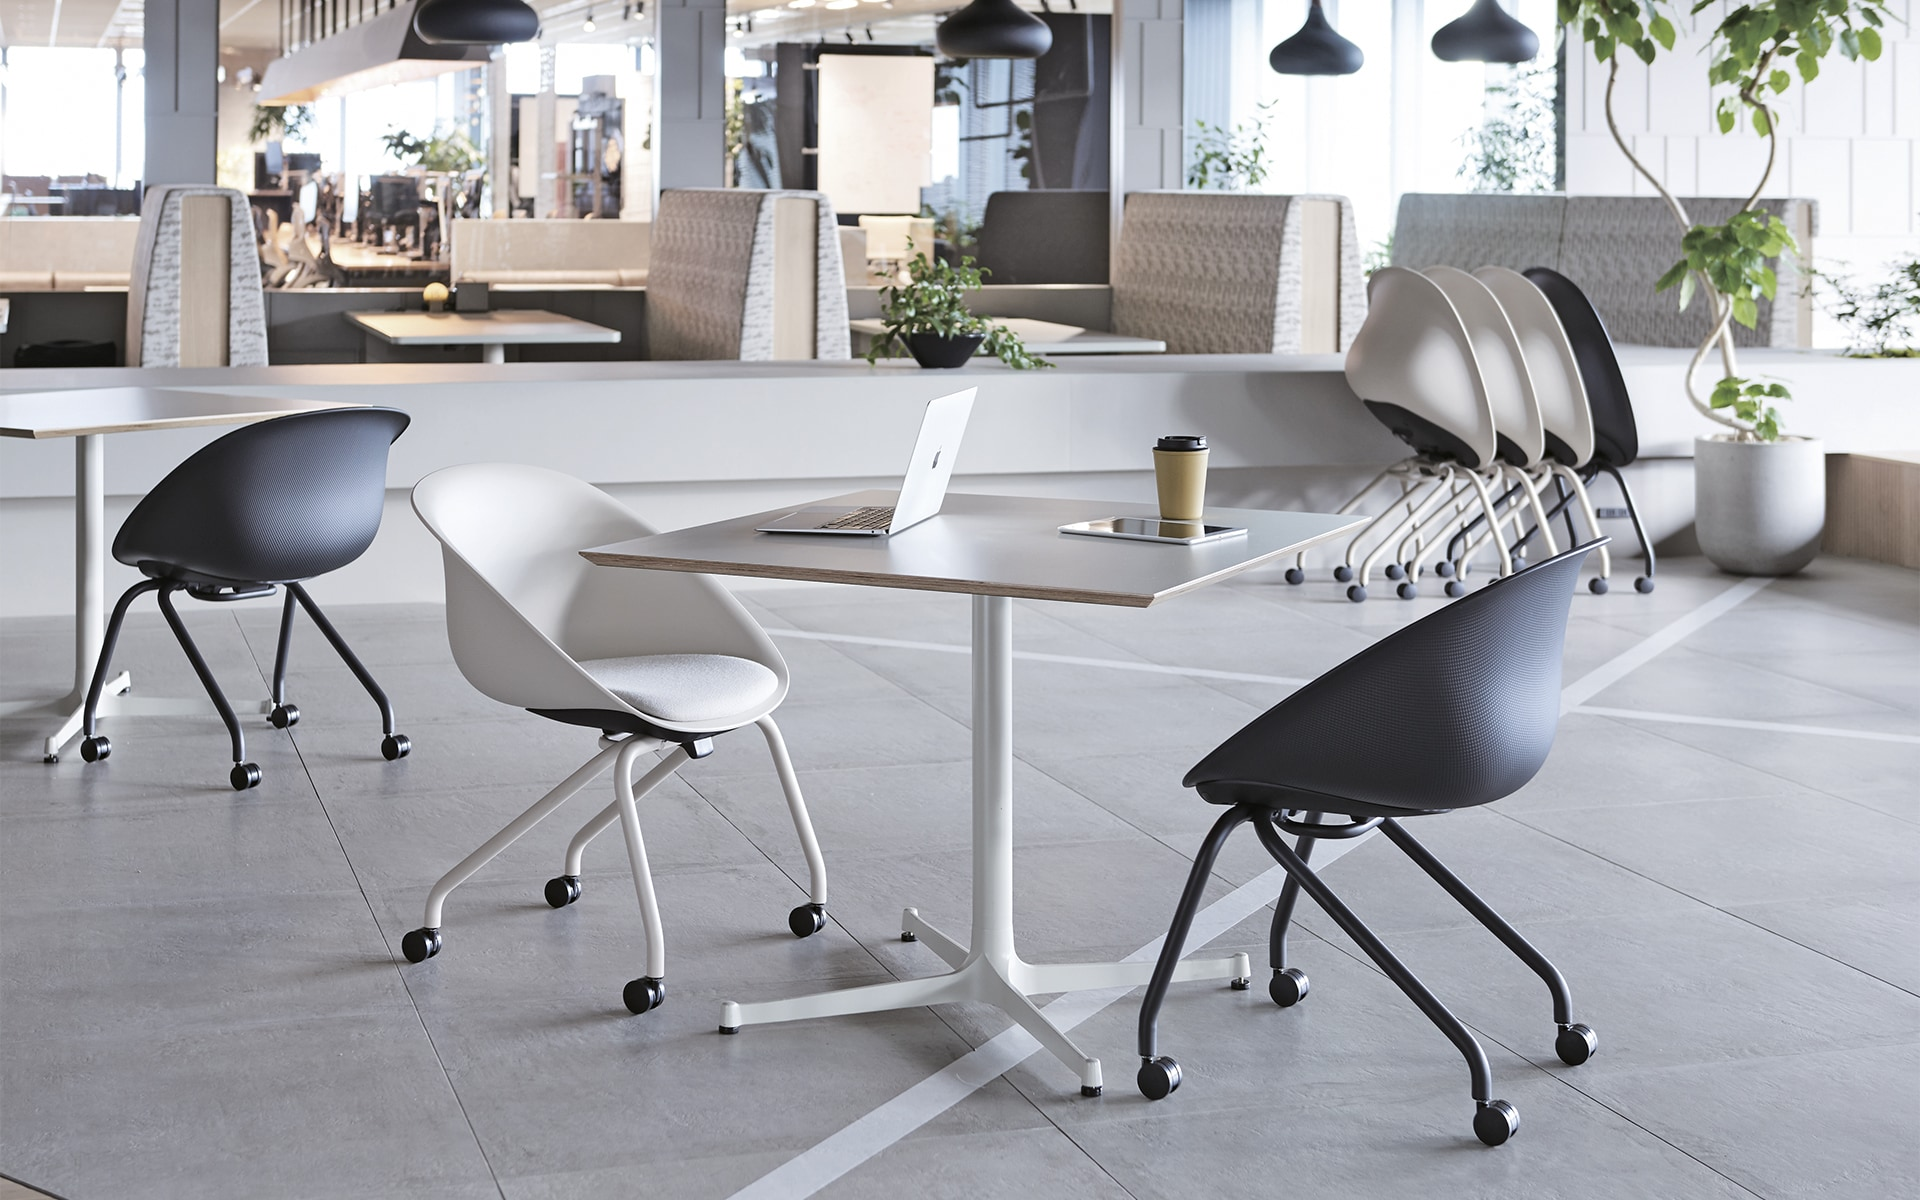 Several ITOKI Wan shell chairs by ITO Design in black and white in modern co-working space